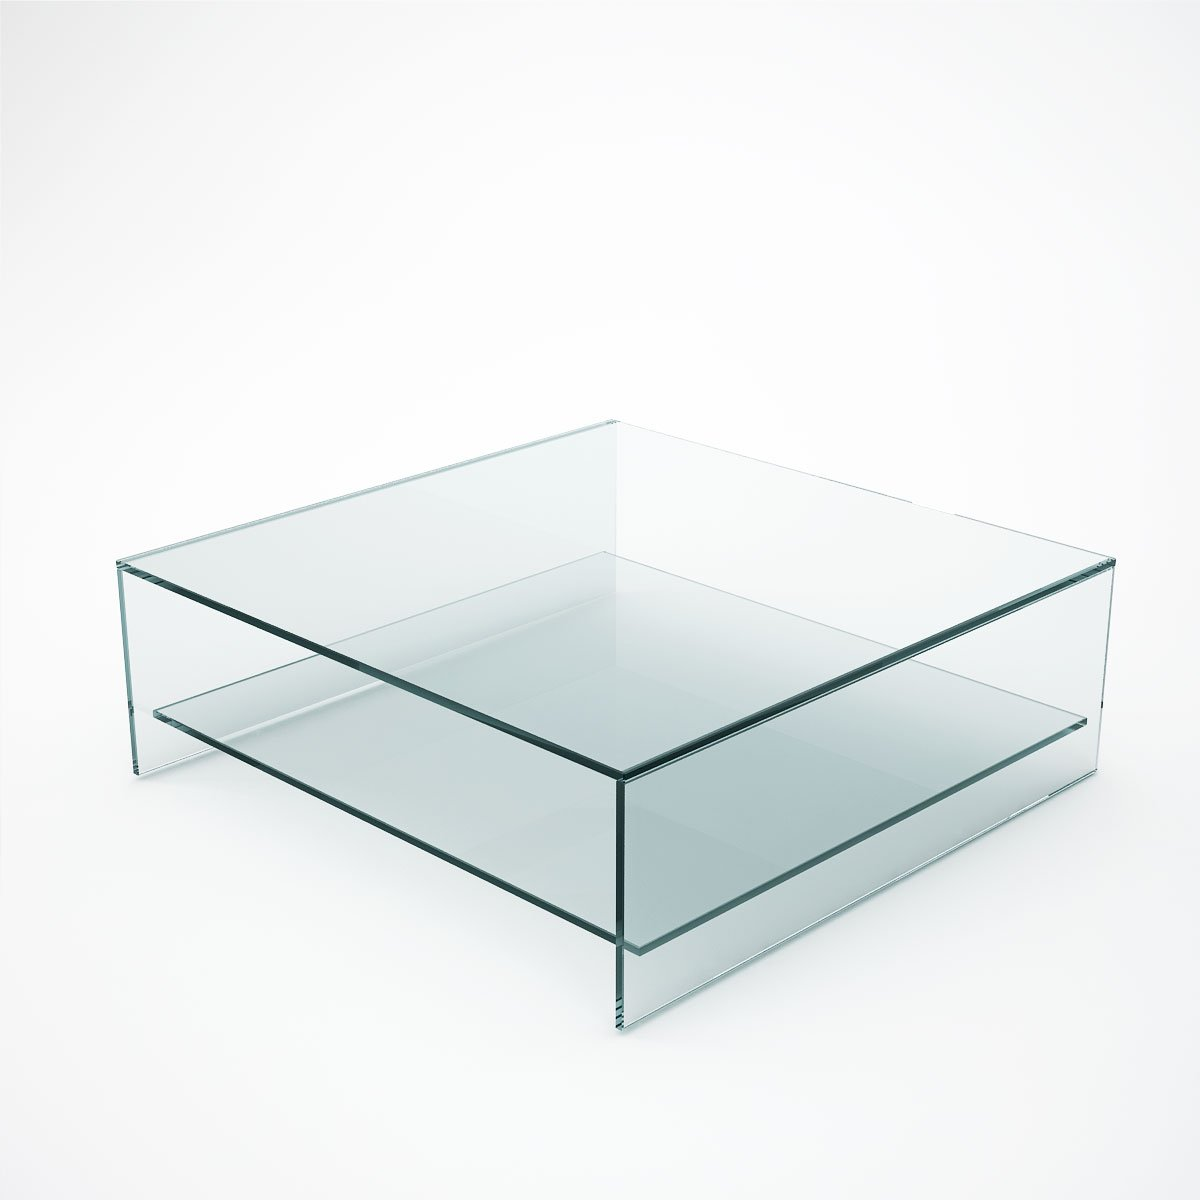 Judd square glass coffee table with shelf klarity for 2 shelf glass coffee table